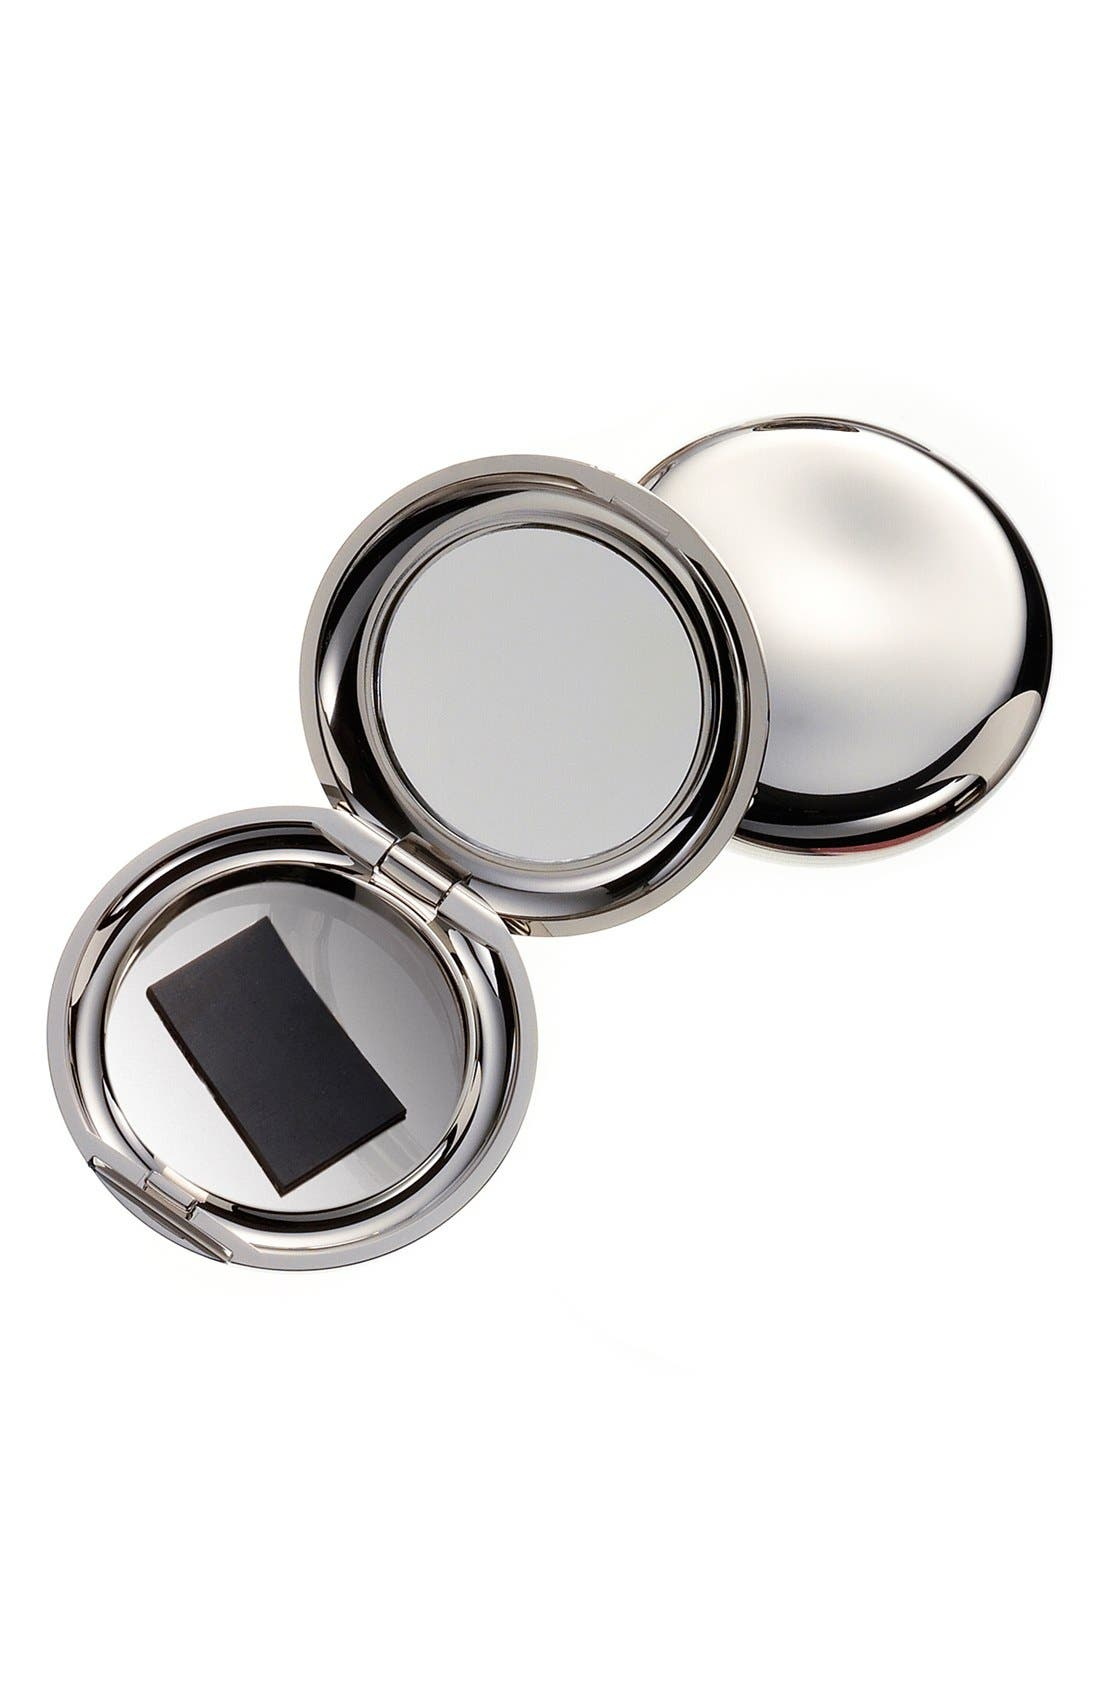 Chantecaille Pebble Compact